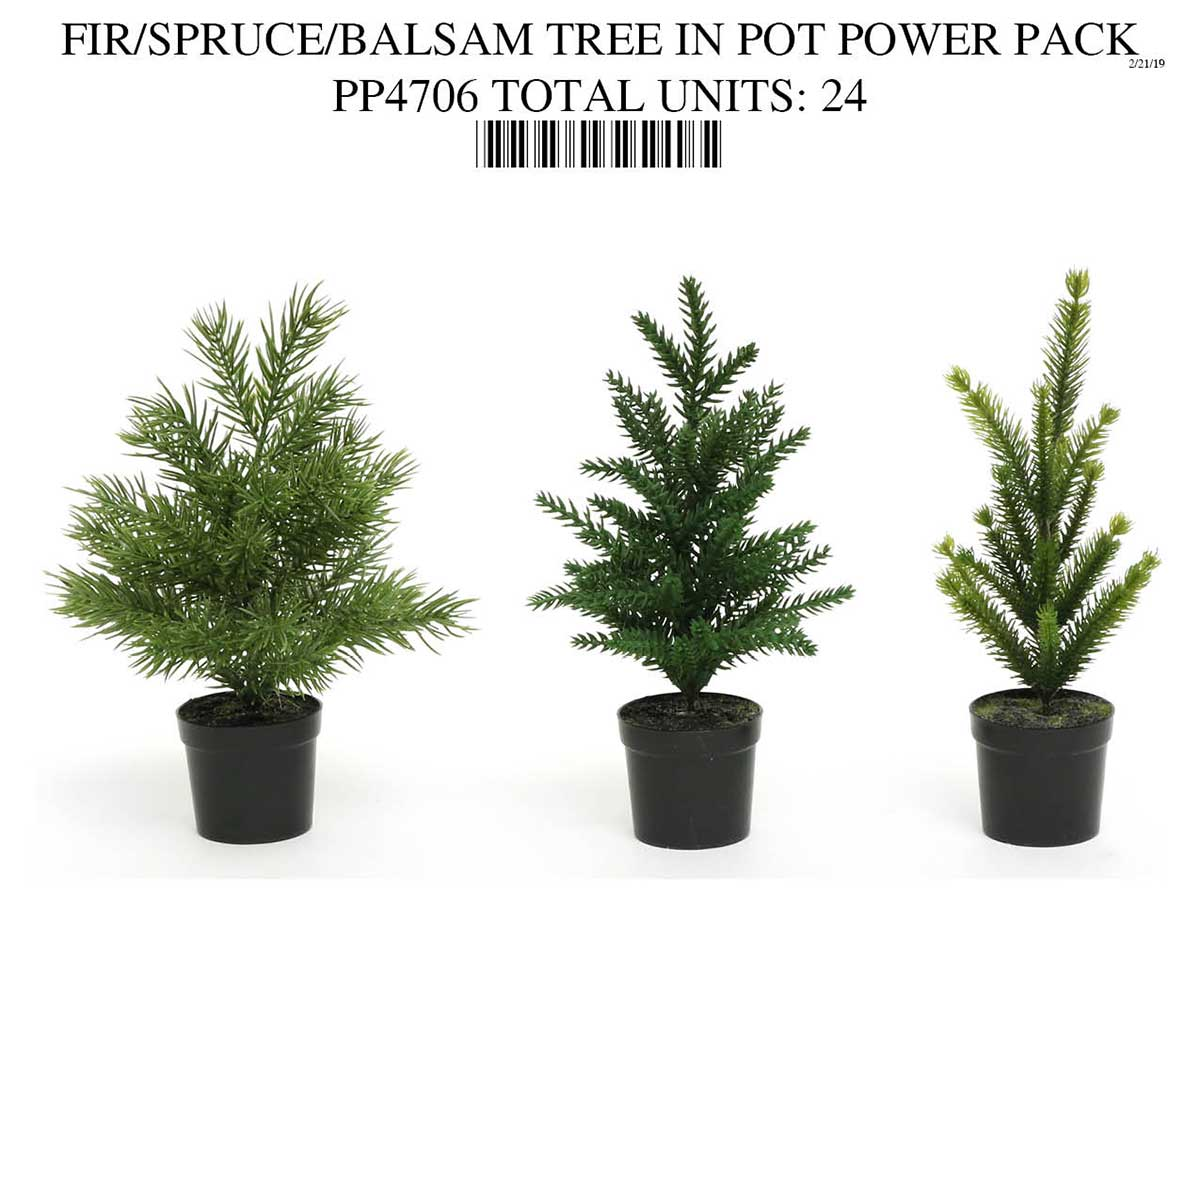 MINI TREE IN BLACK POT PP4706